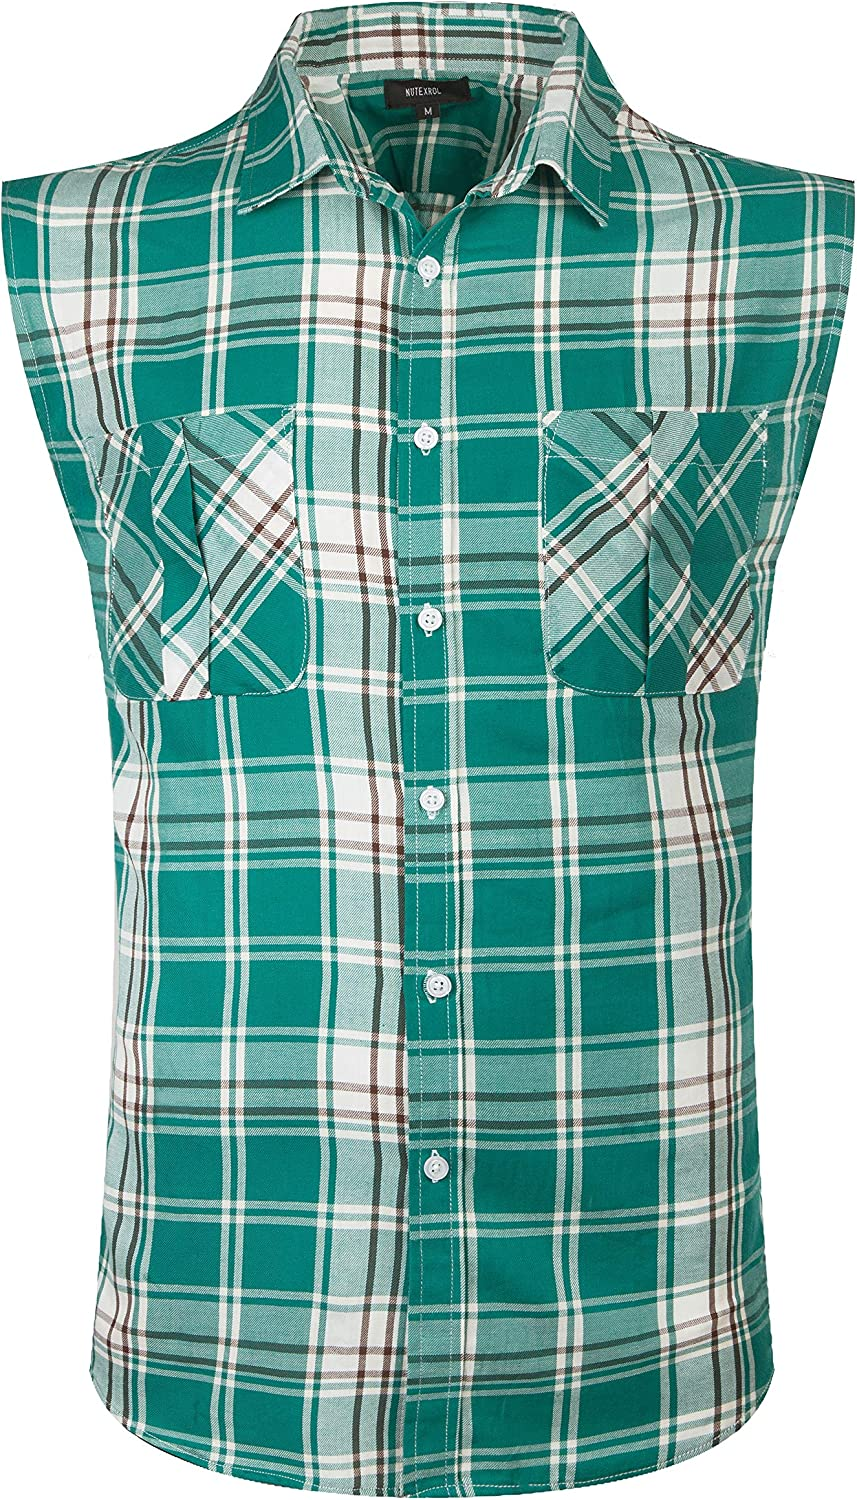 NUTEXROL Mens Casual Sleeveless Shirts Checked Cotton Plaid Vest